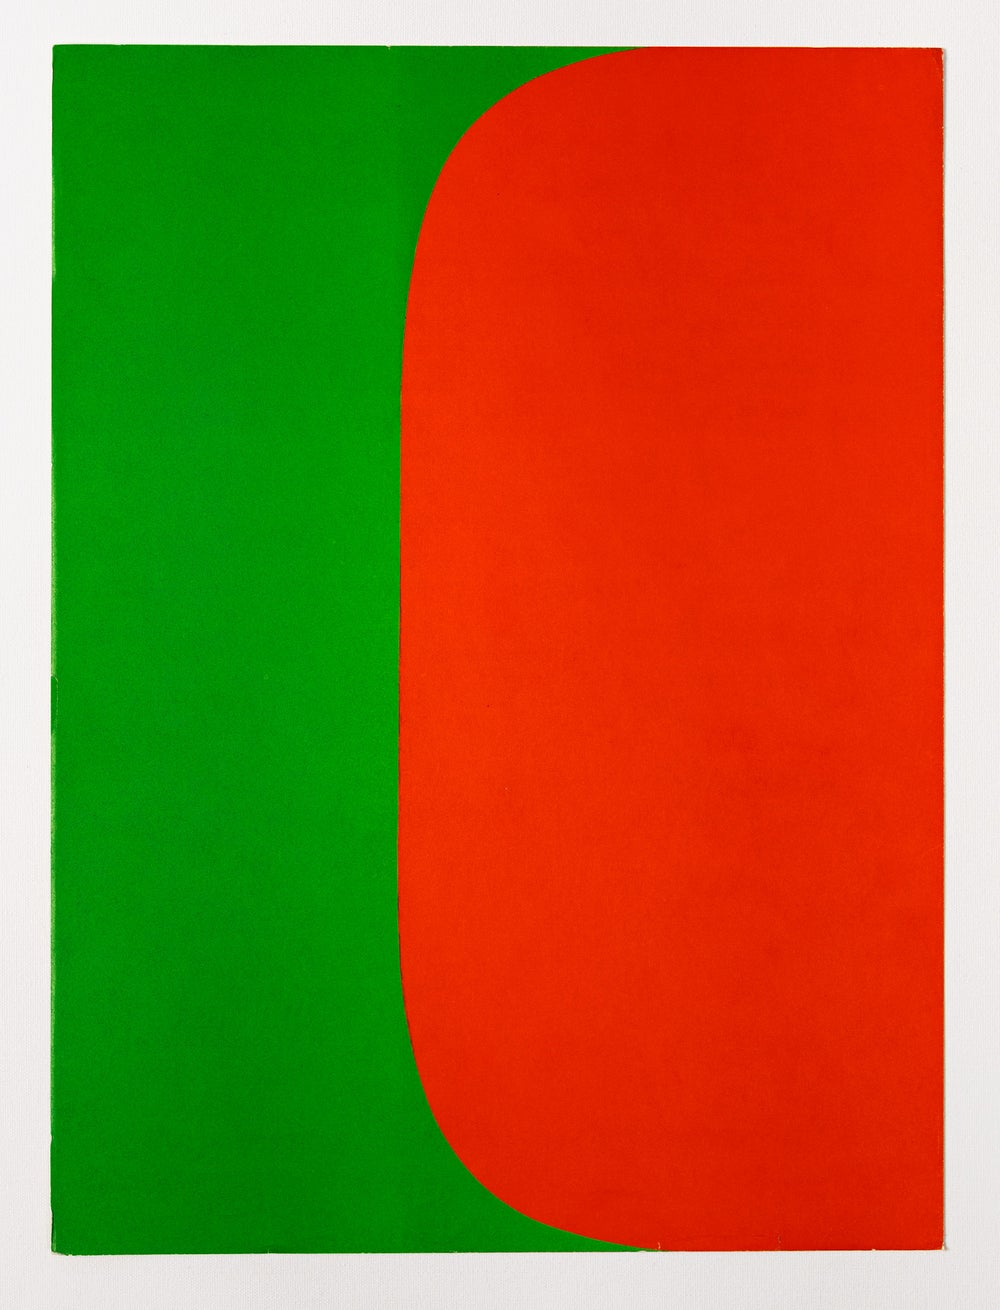 Image of Ellsworth Kelly, Derrière Le Miroir No. 149, 1964, red / green